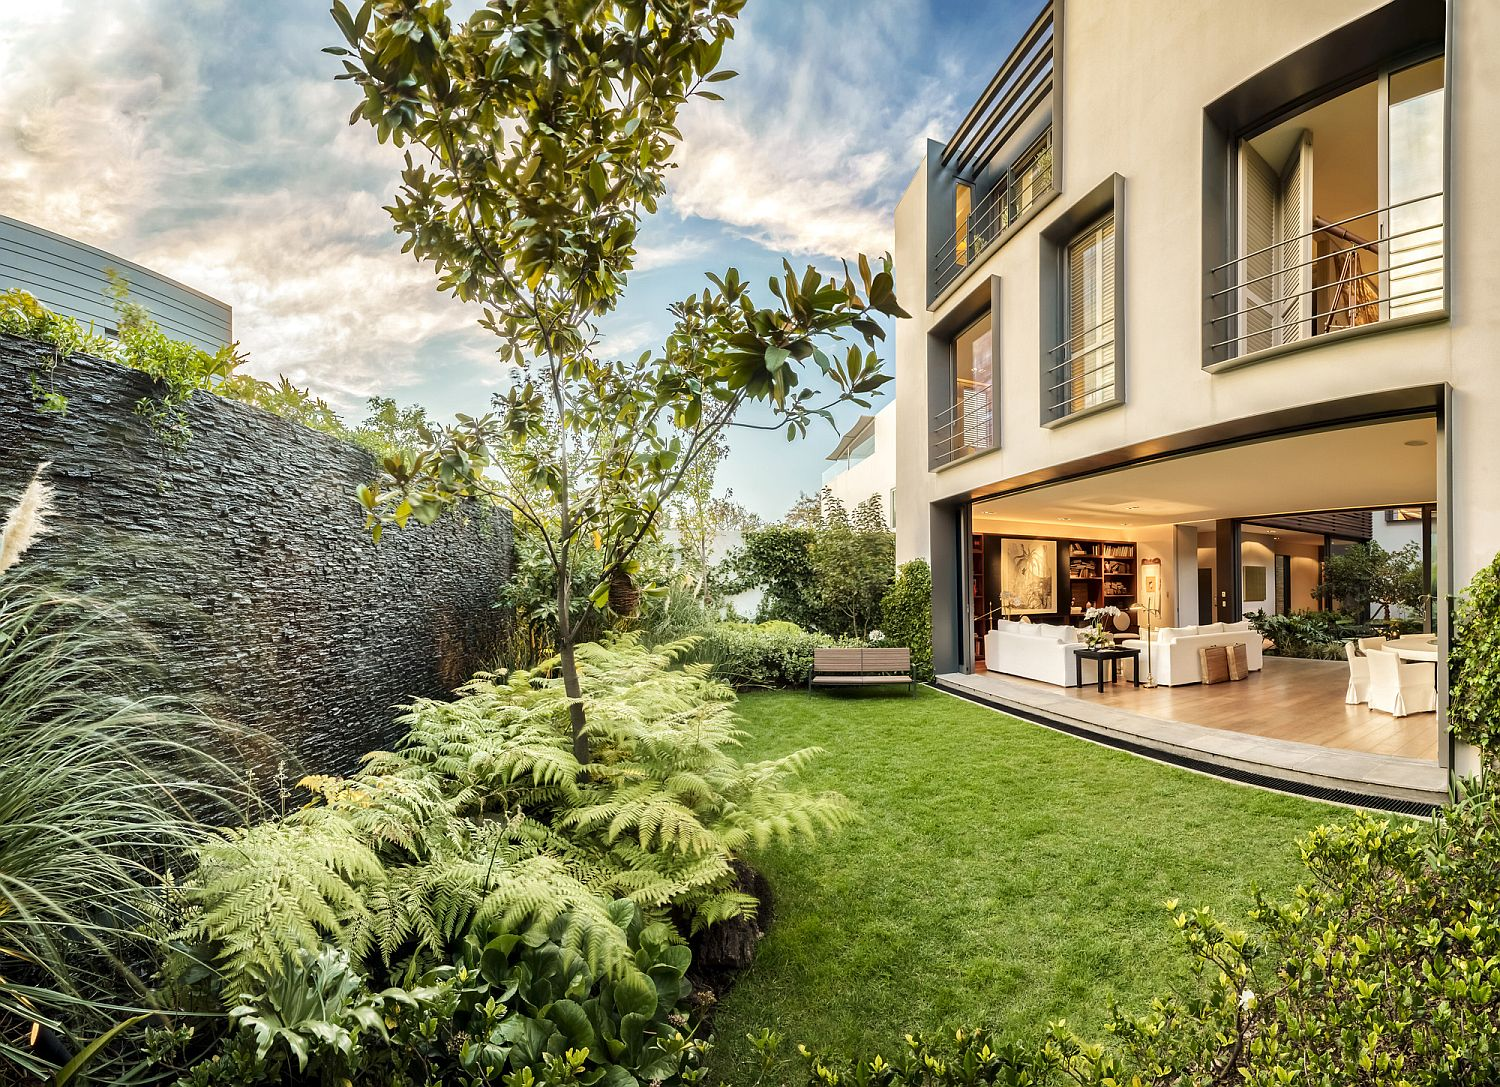 Lush green yard of private Mexican home becomes a part of interior